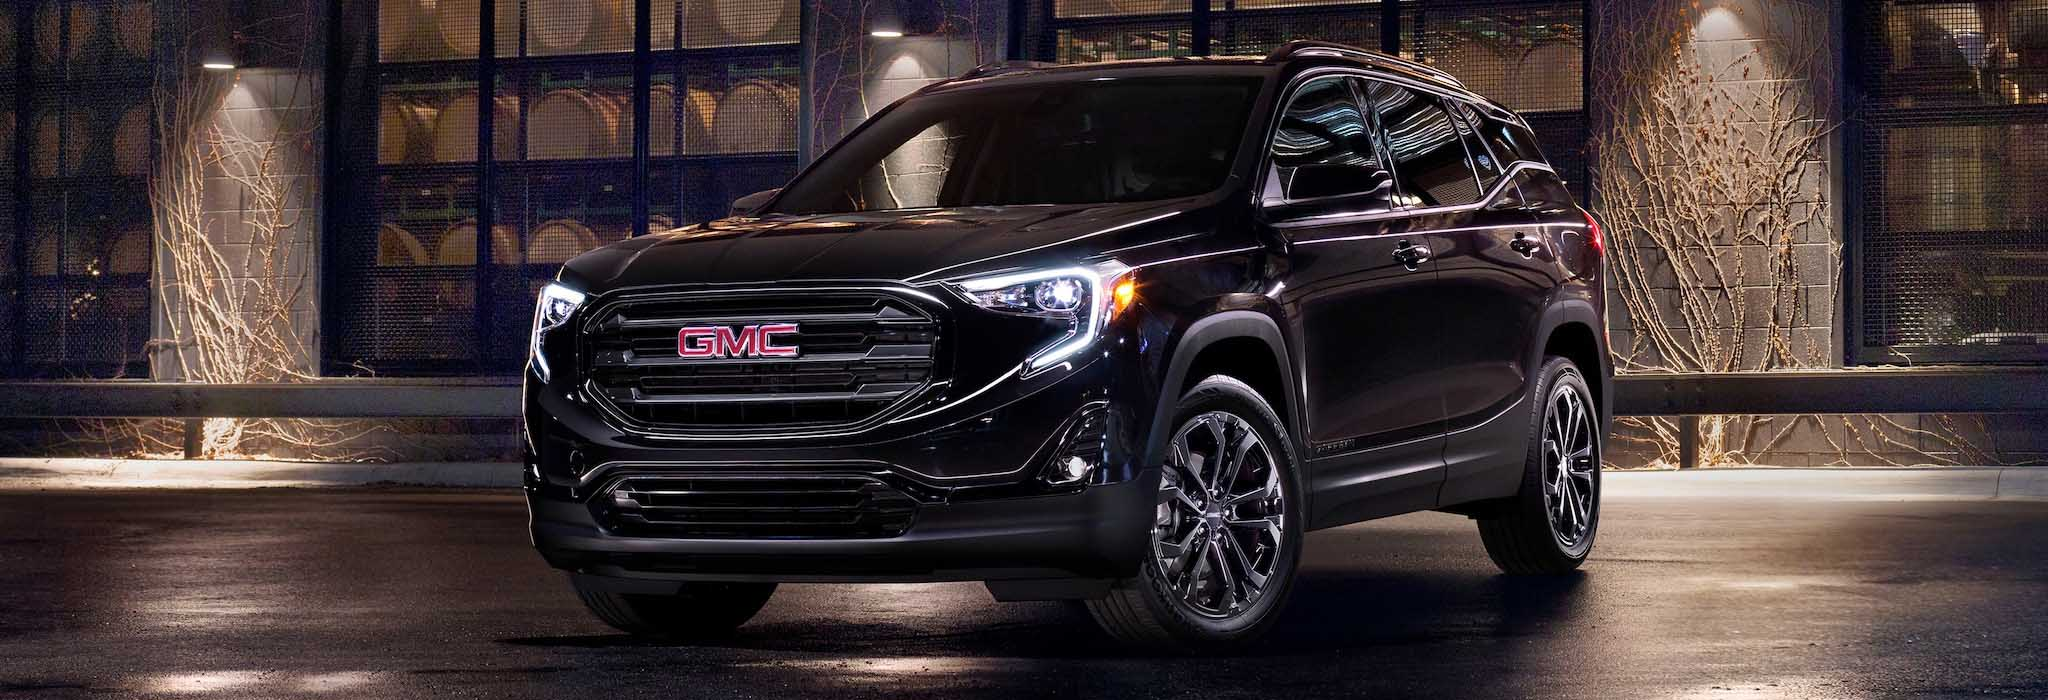 2020 GMC Terrain SUV in New Iberia, LA, at Musson-Patout Automotive